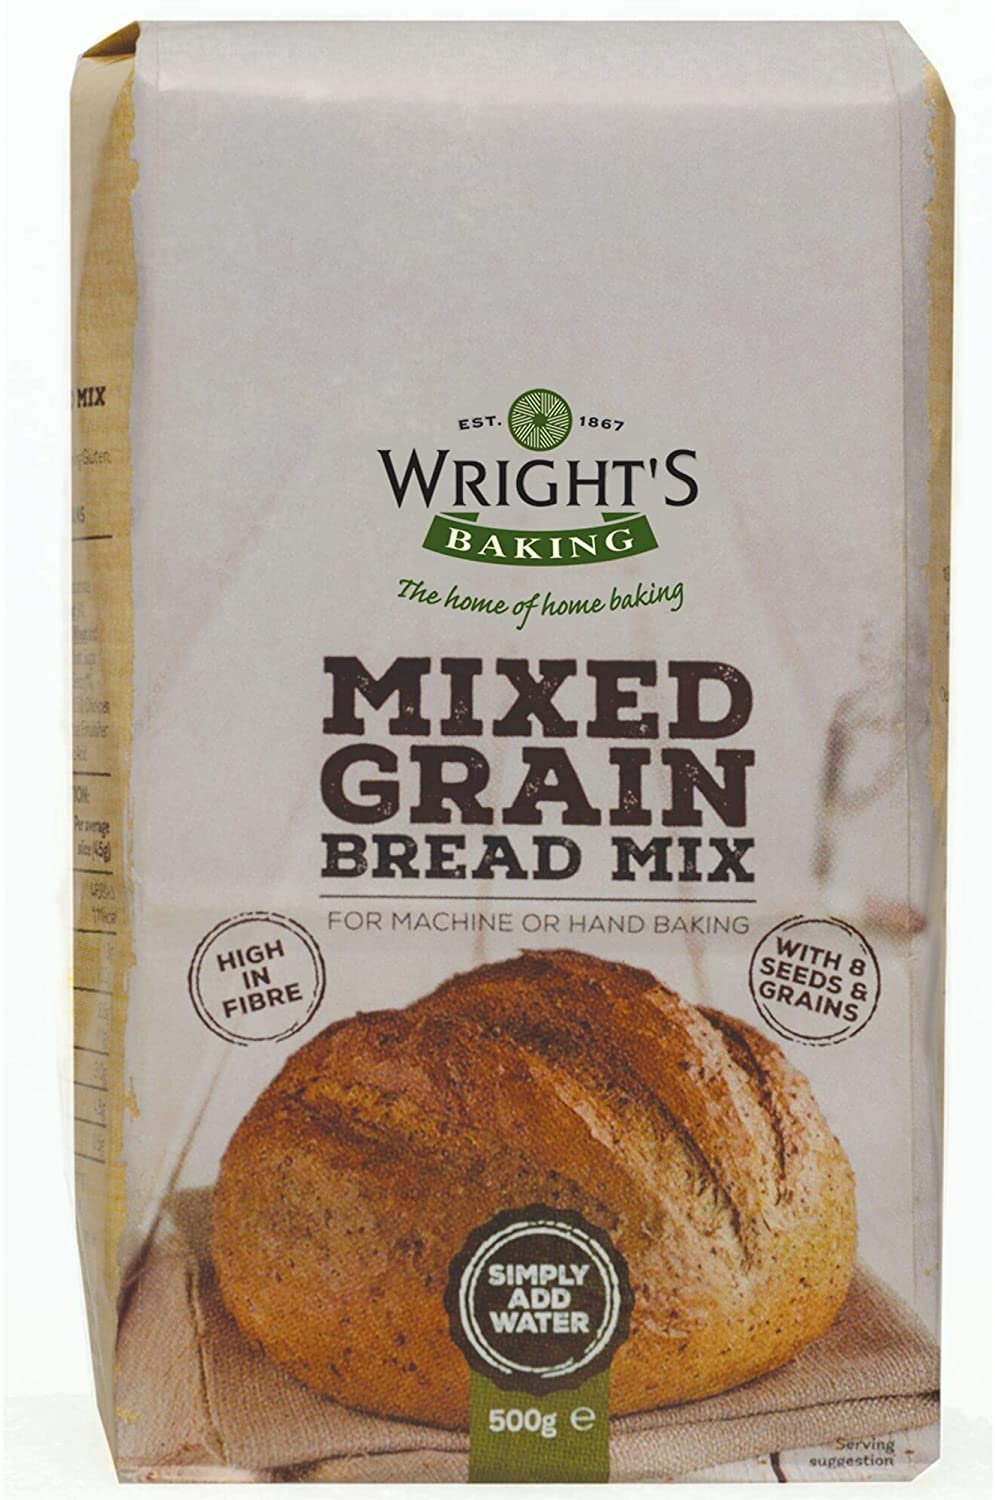 Wrights Baking Mixed Grain Bread Mix